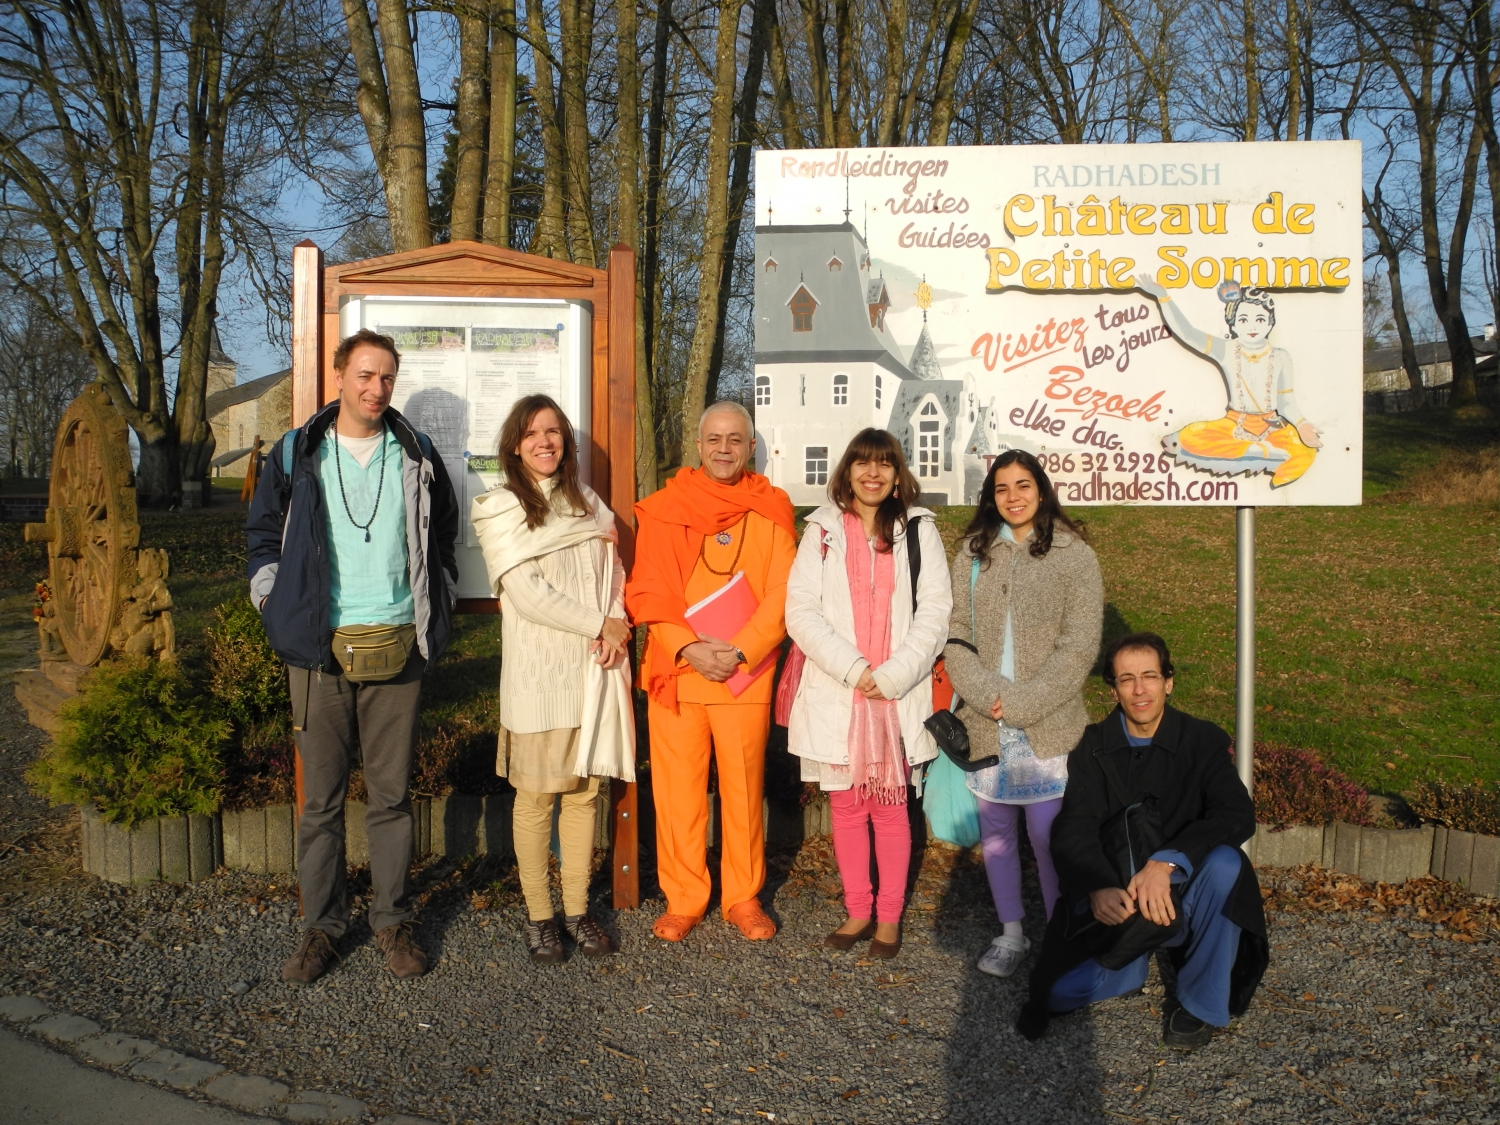 Hindu Forum of Europe - Radhadesh, ISKCON Hare Krshna, Belgium - 2012, March